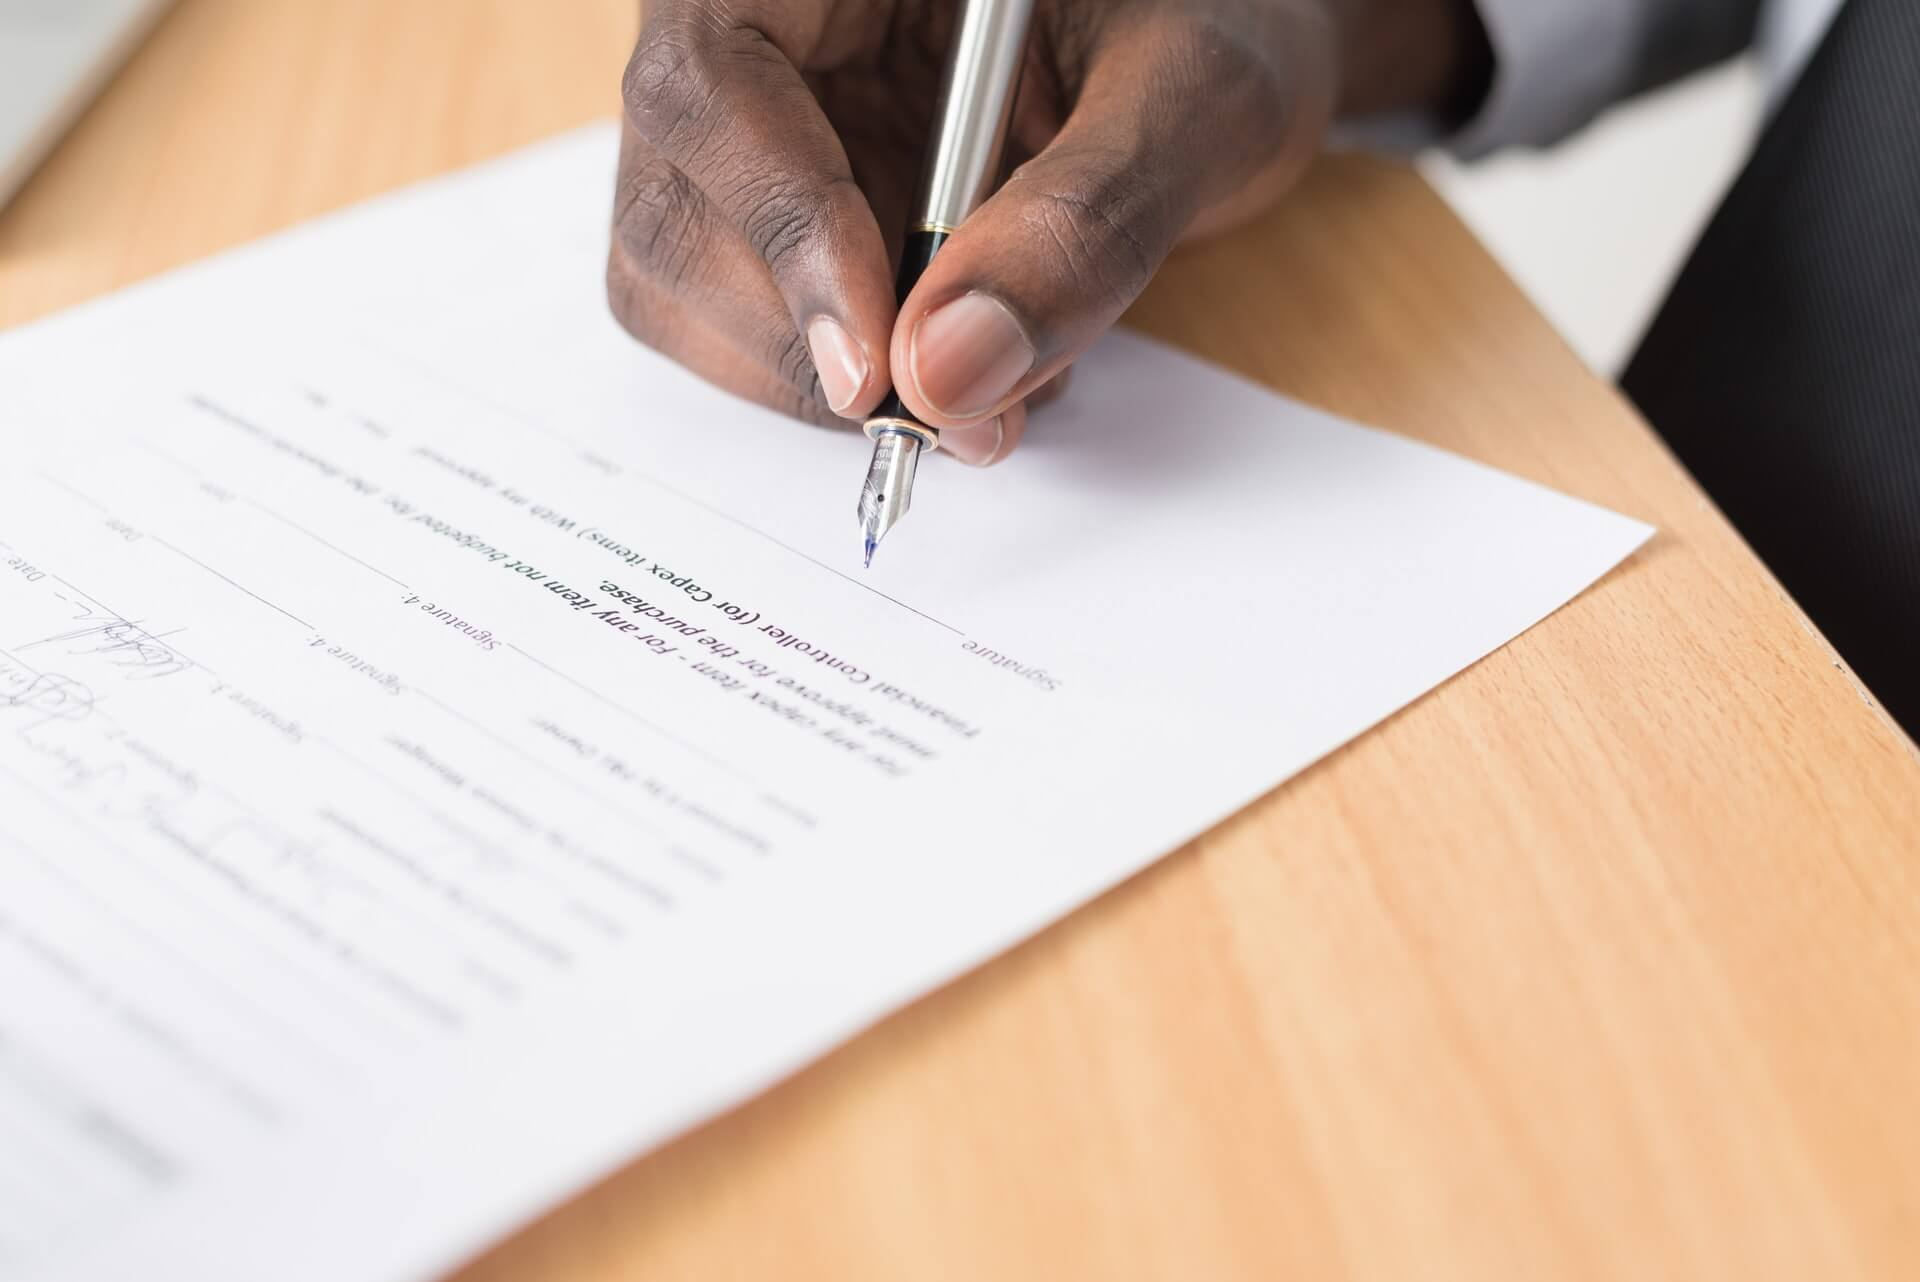 How to Write a Graphic Design Contract (7 Steps + Template Included)